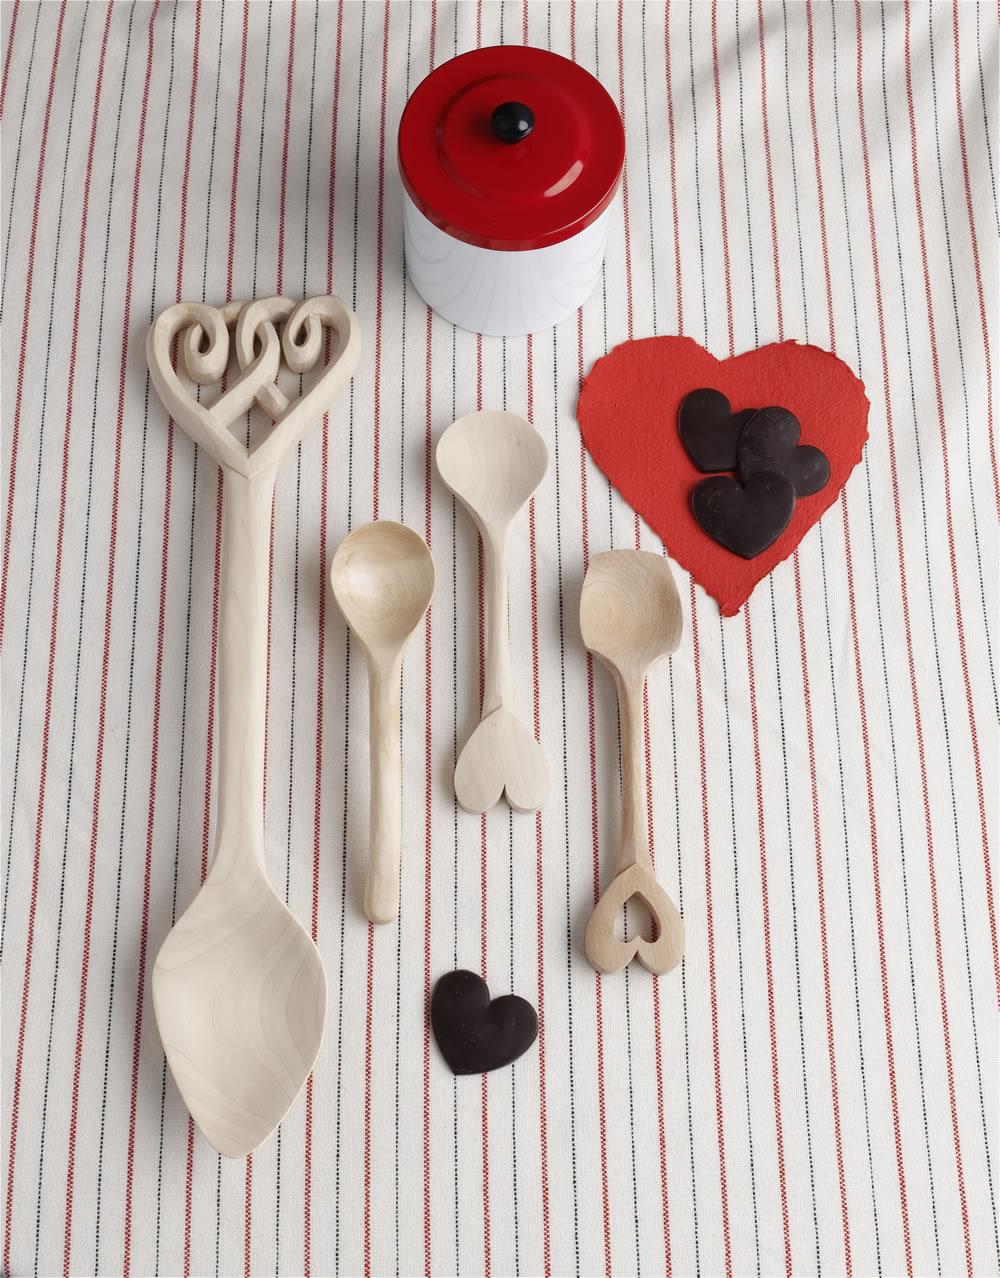 spoons_table_heart_lo.jpg